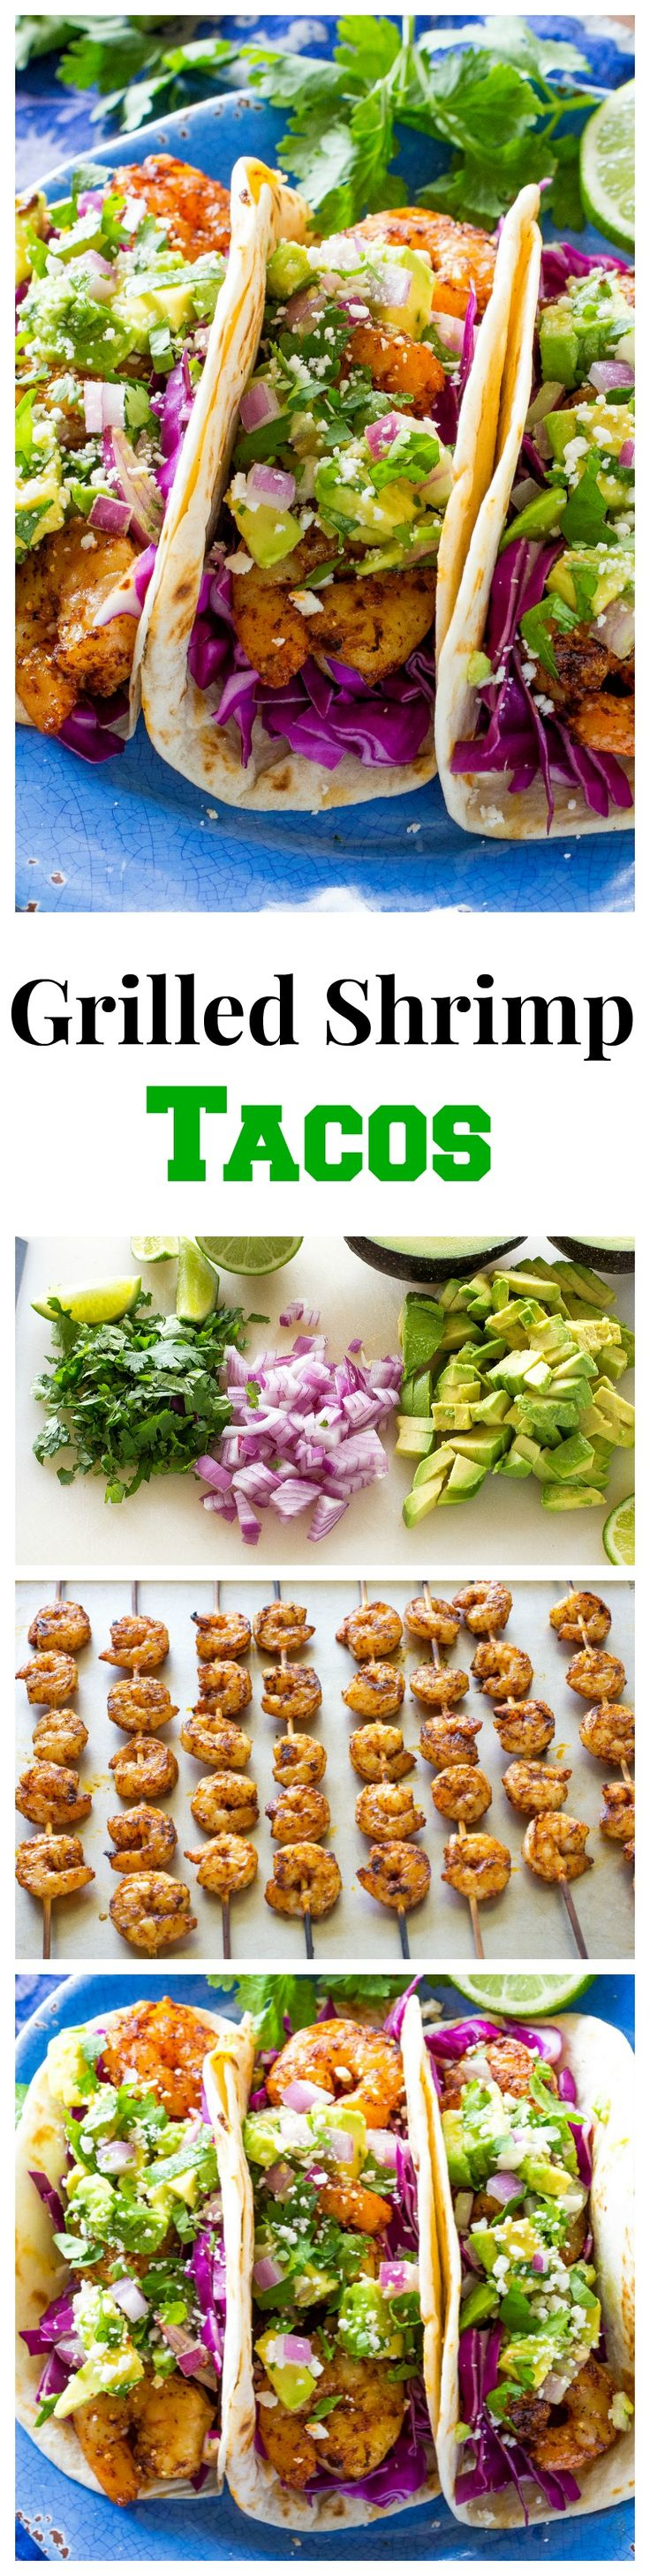 These Grilled Shrimp Tacos with Avocado Salsa are light and refreshing! the-girl-who-ate-everything.com